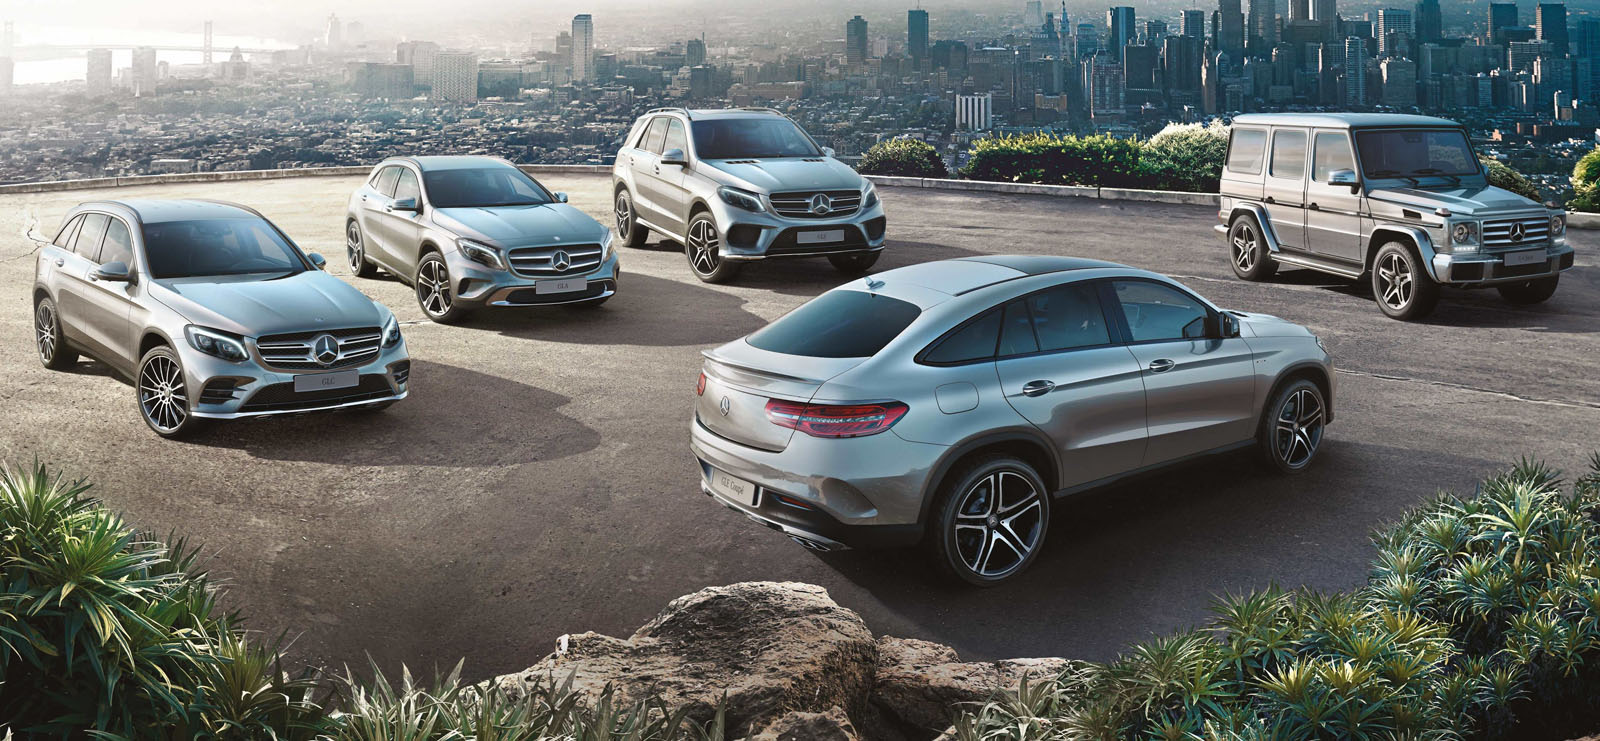 Portuguese petrol head july 2016 for Mercedes benz suv range